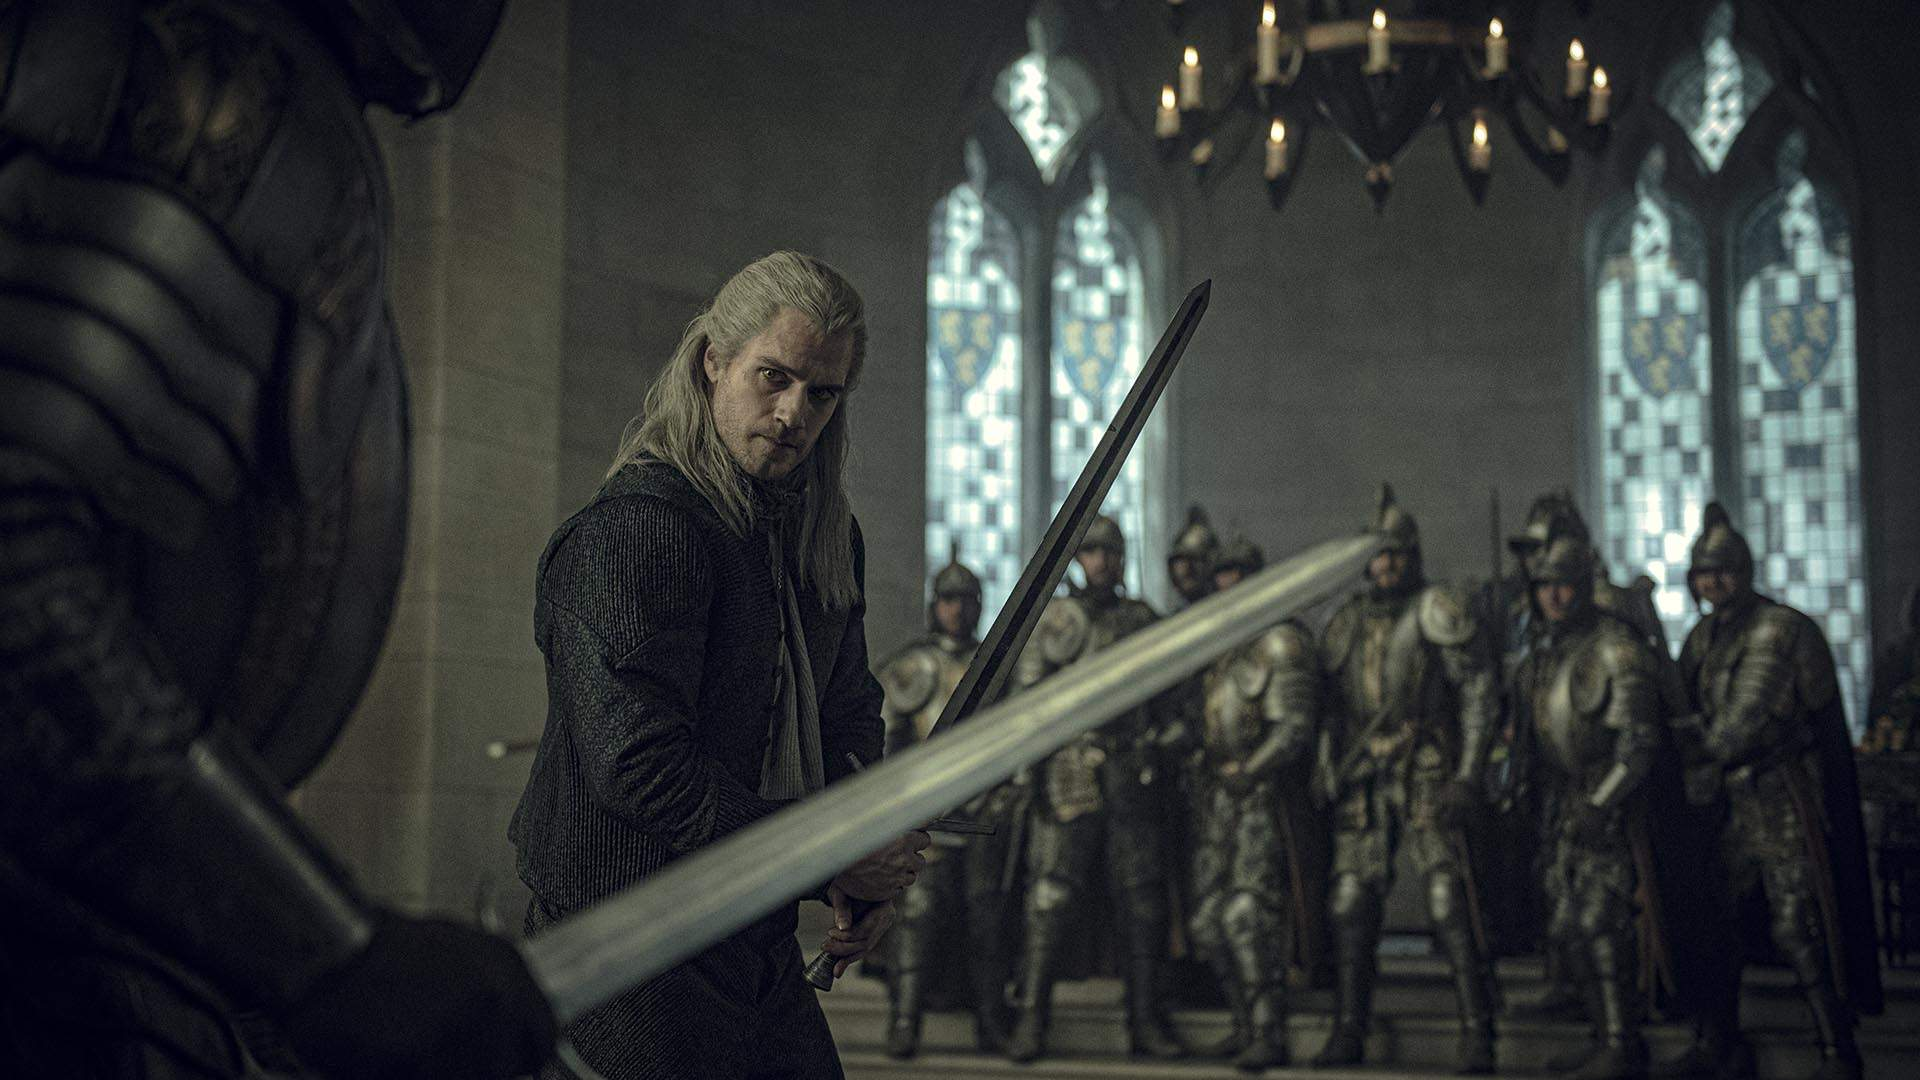 Netflix's Huge New Fantasy Series 'The Witcher' Has Already Been Renewed for a Second Season